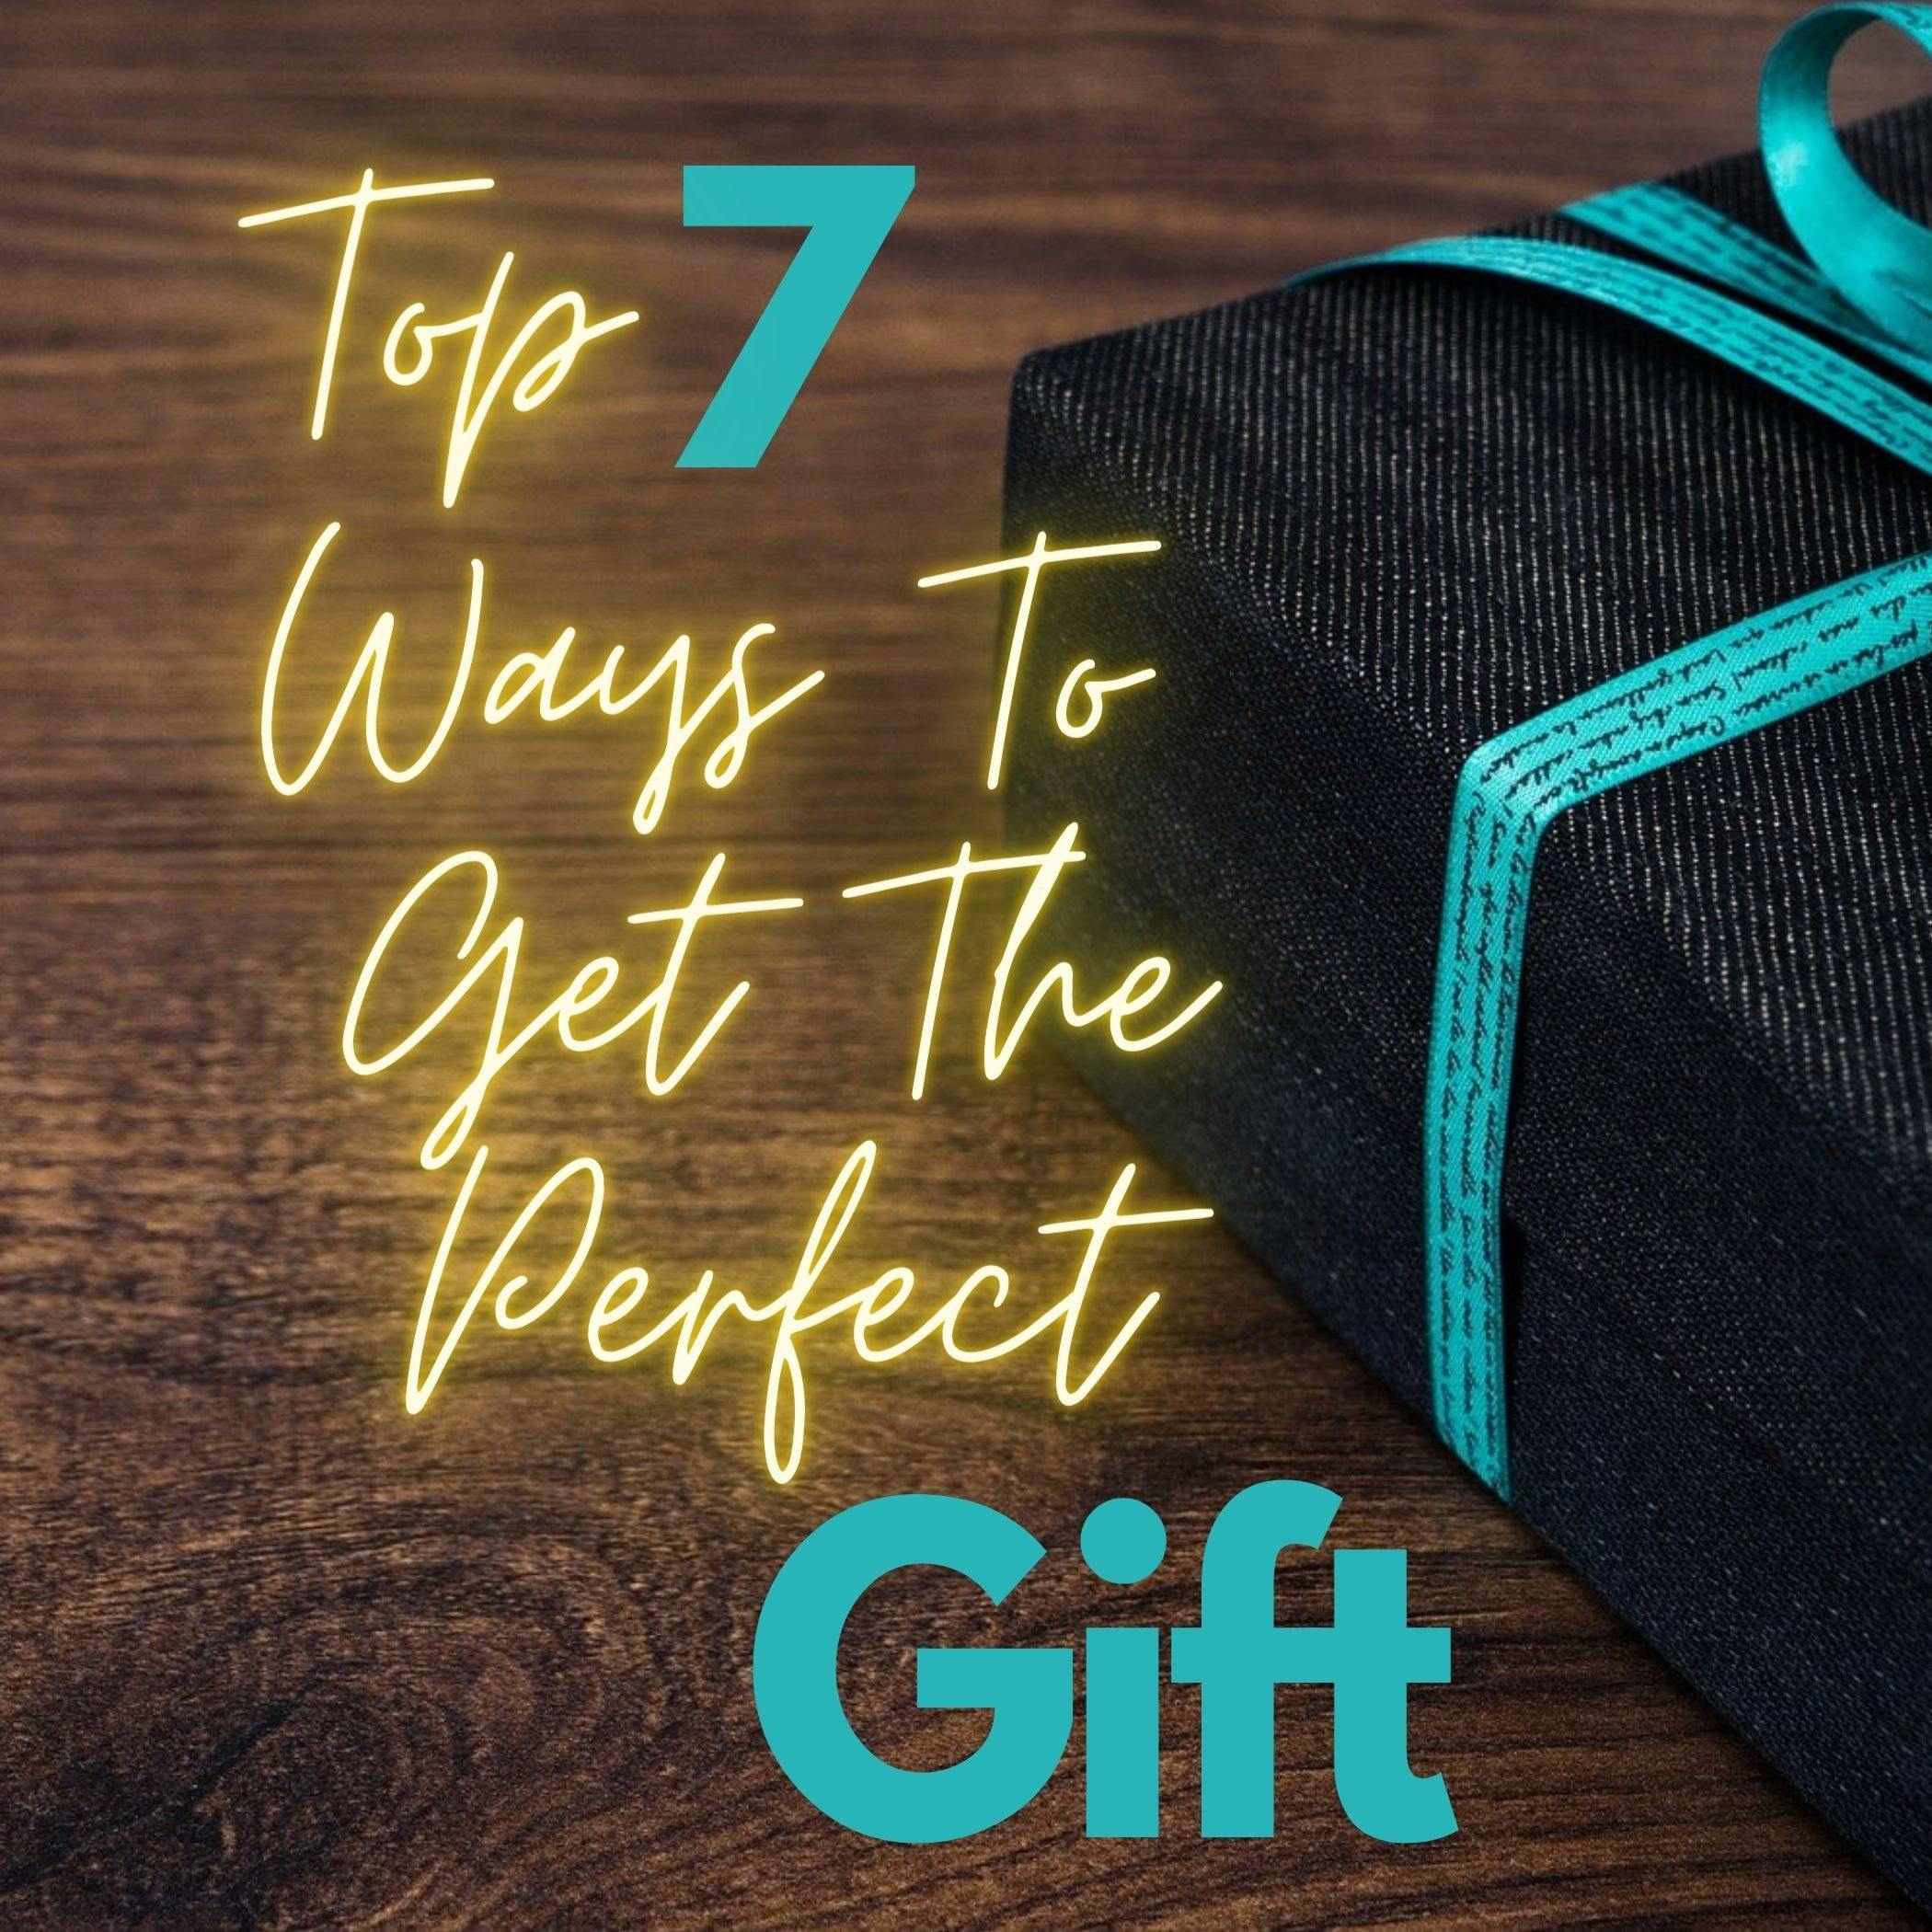 Top 7 Ways To Get That Perfect Gift 🎁